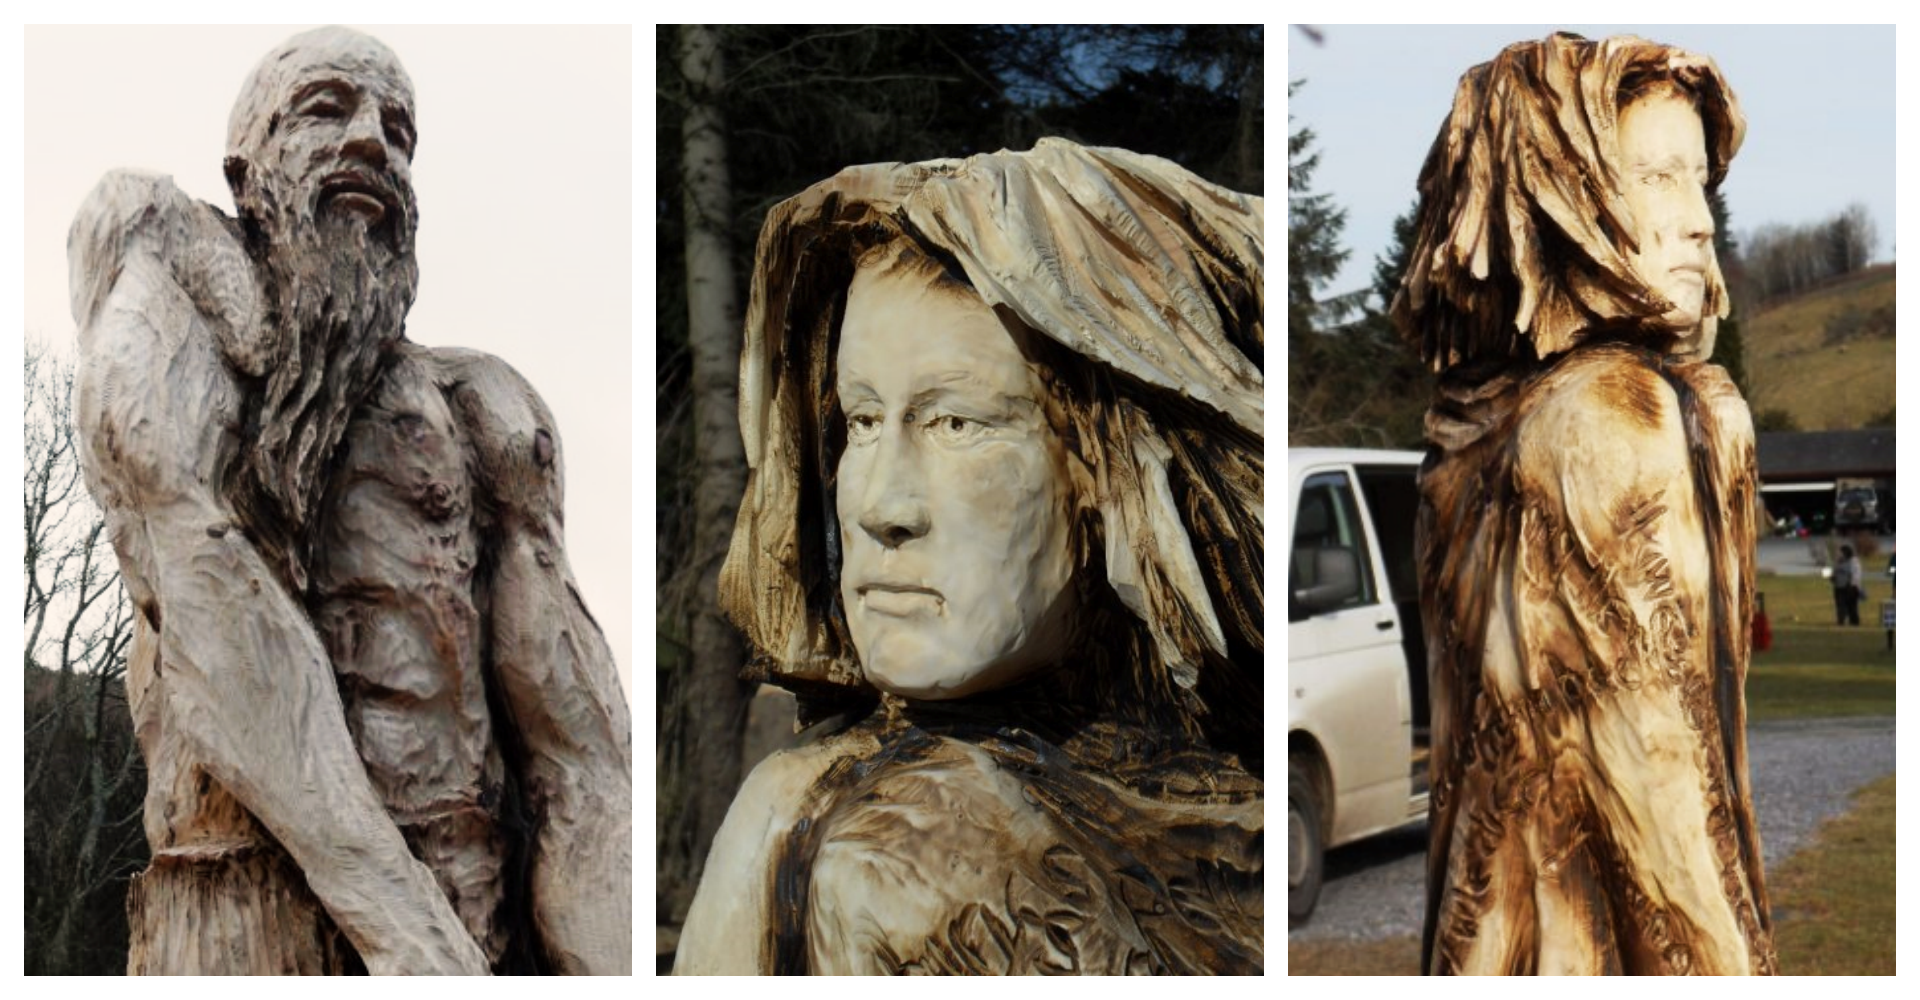 Sculptures of myths and legends: a triptych of wooden sculptures of characters from the mabinogion by simon o'rourke